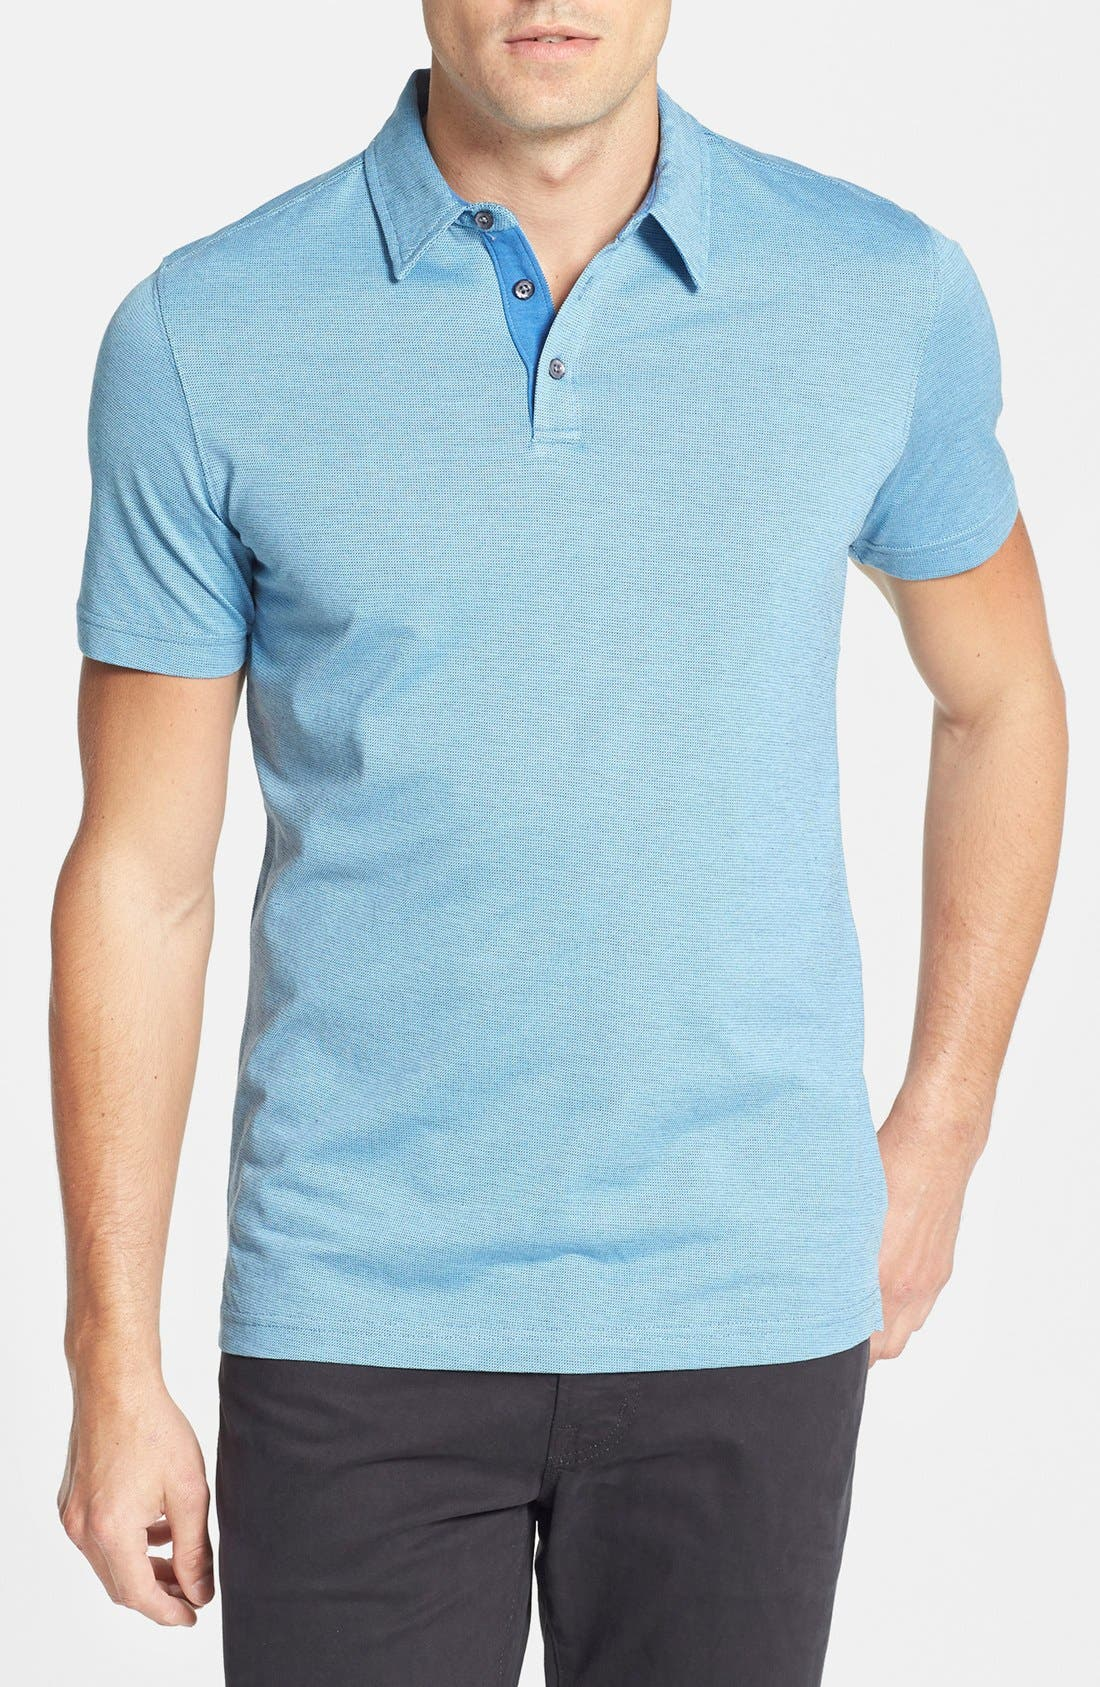 Main Image - Robert Barakett 'Ludwig' Bird's Eye Knit Polo